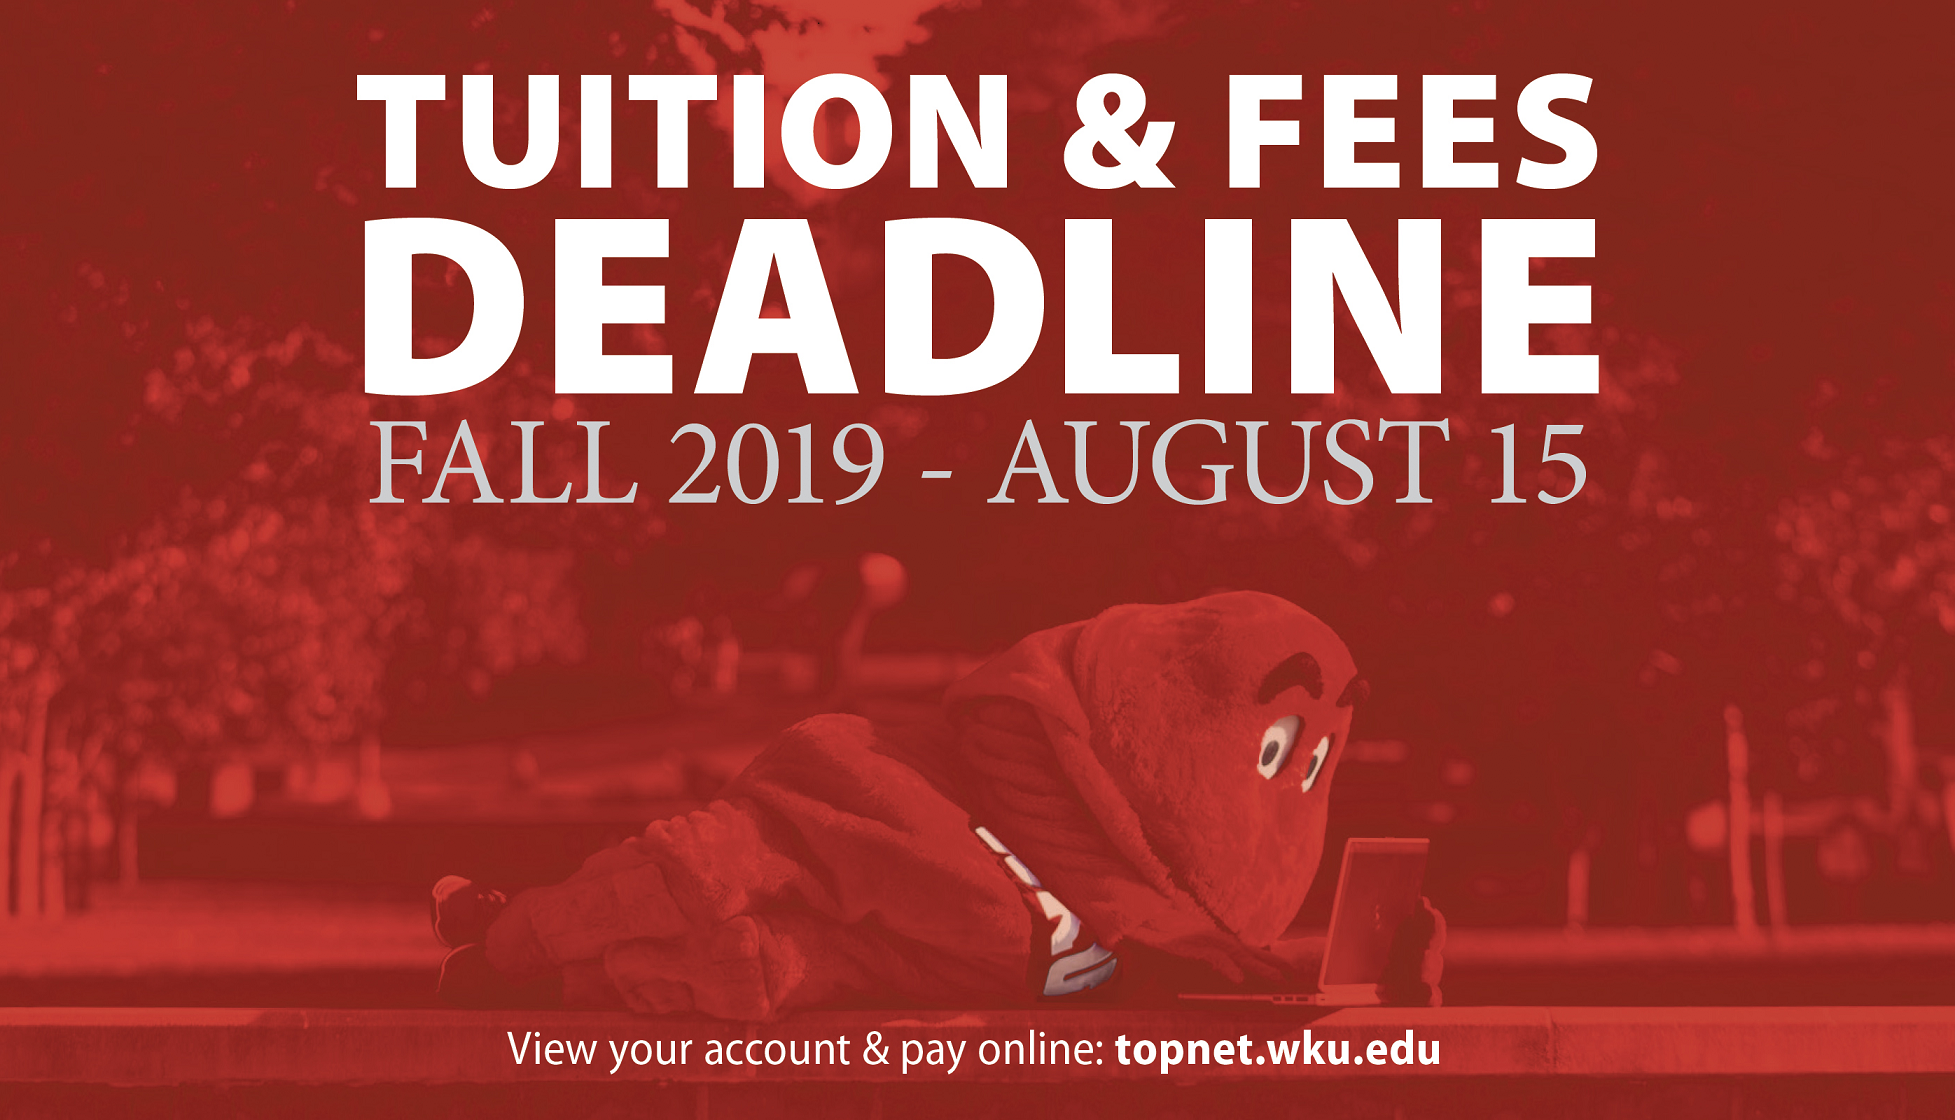 Tuition and Fees Deadline Fall 2019